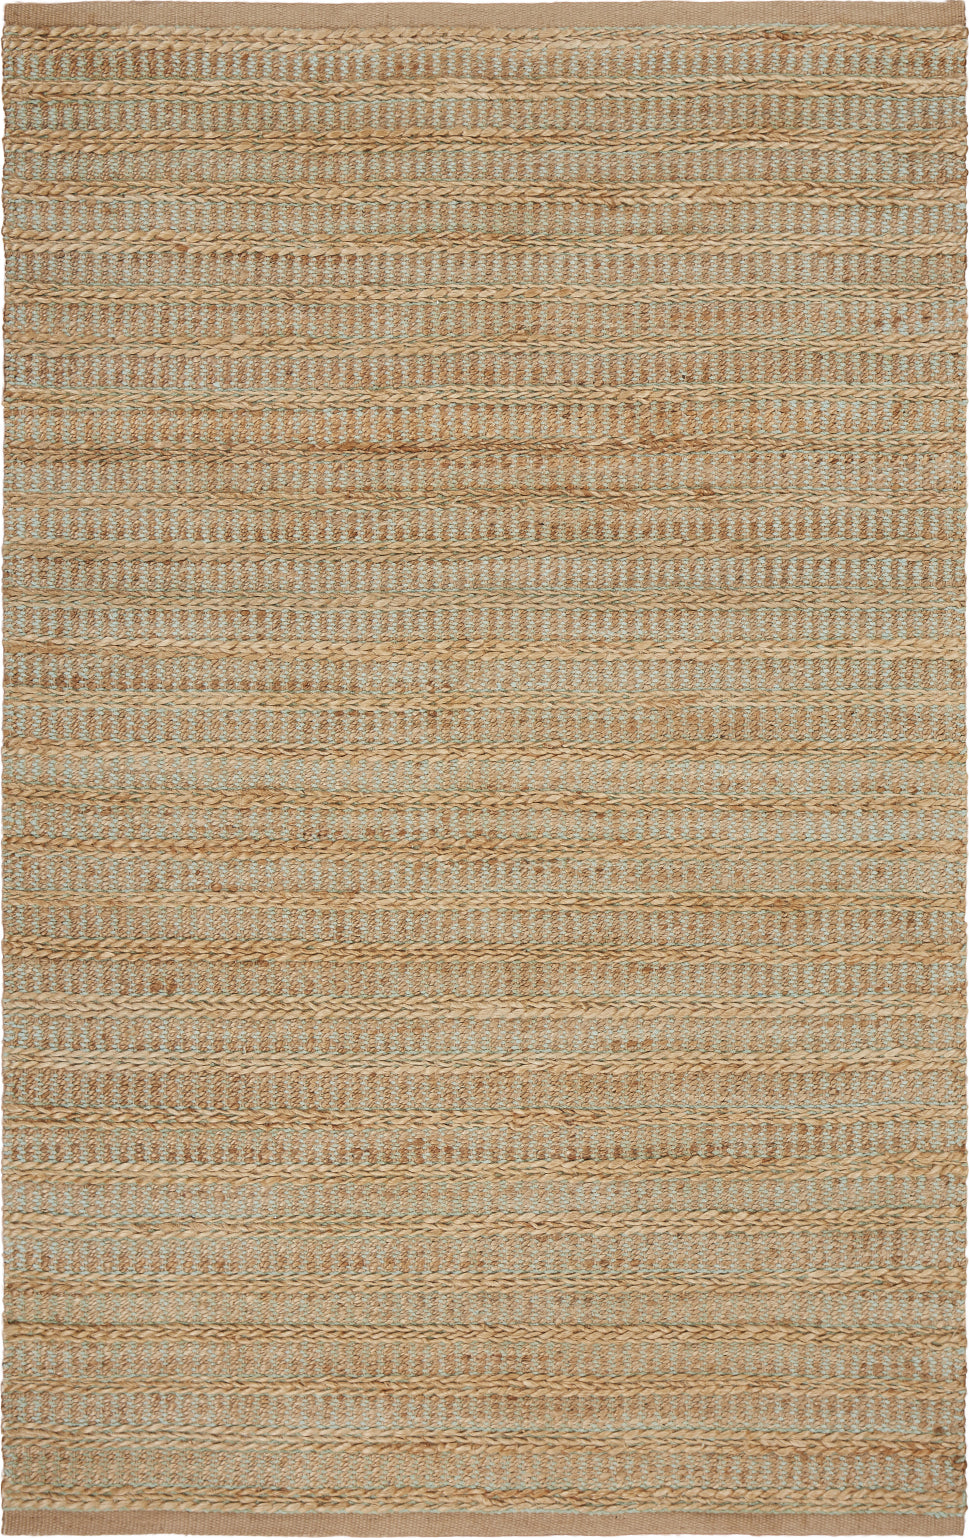 LR Resources Natural Fiber 3317 Seafoam Area Rug main image